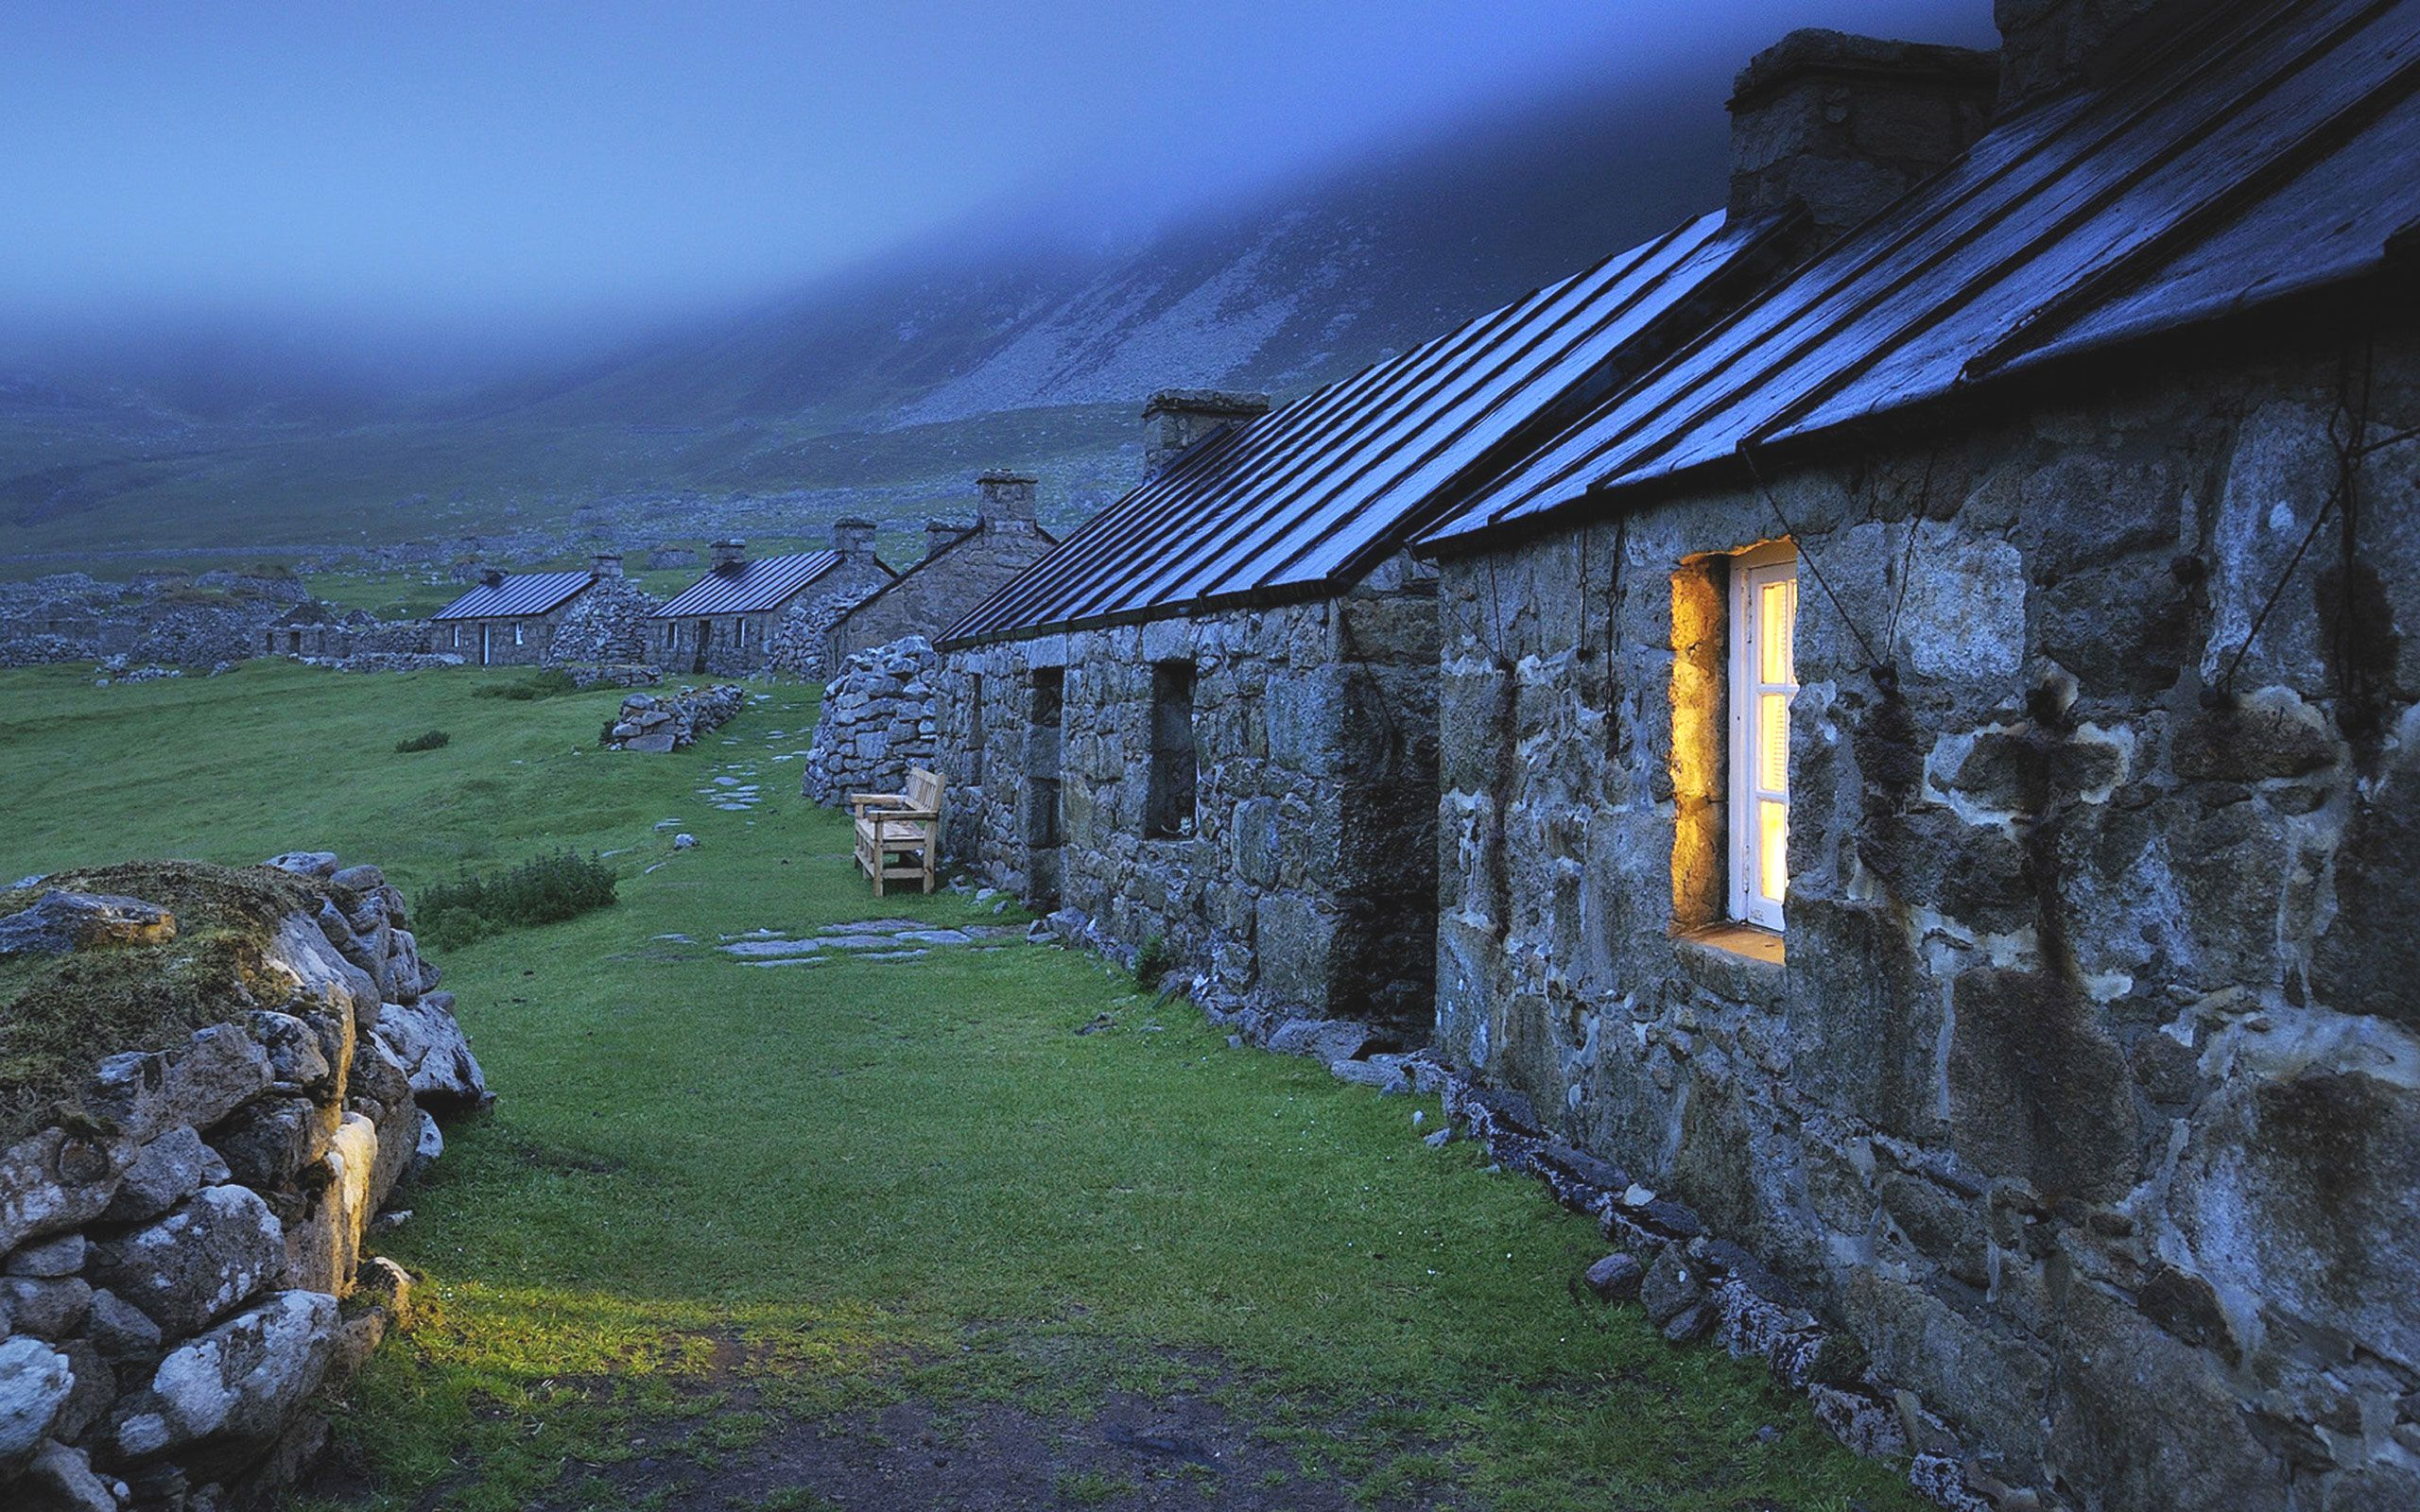 Stone Houses in a Village in the Mountains of Scotland